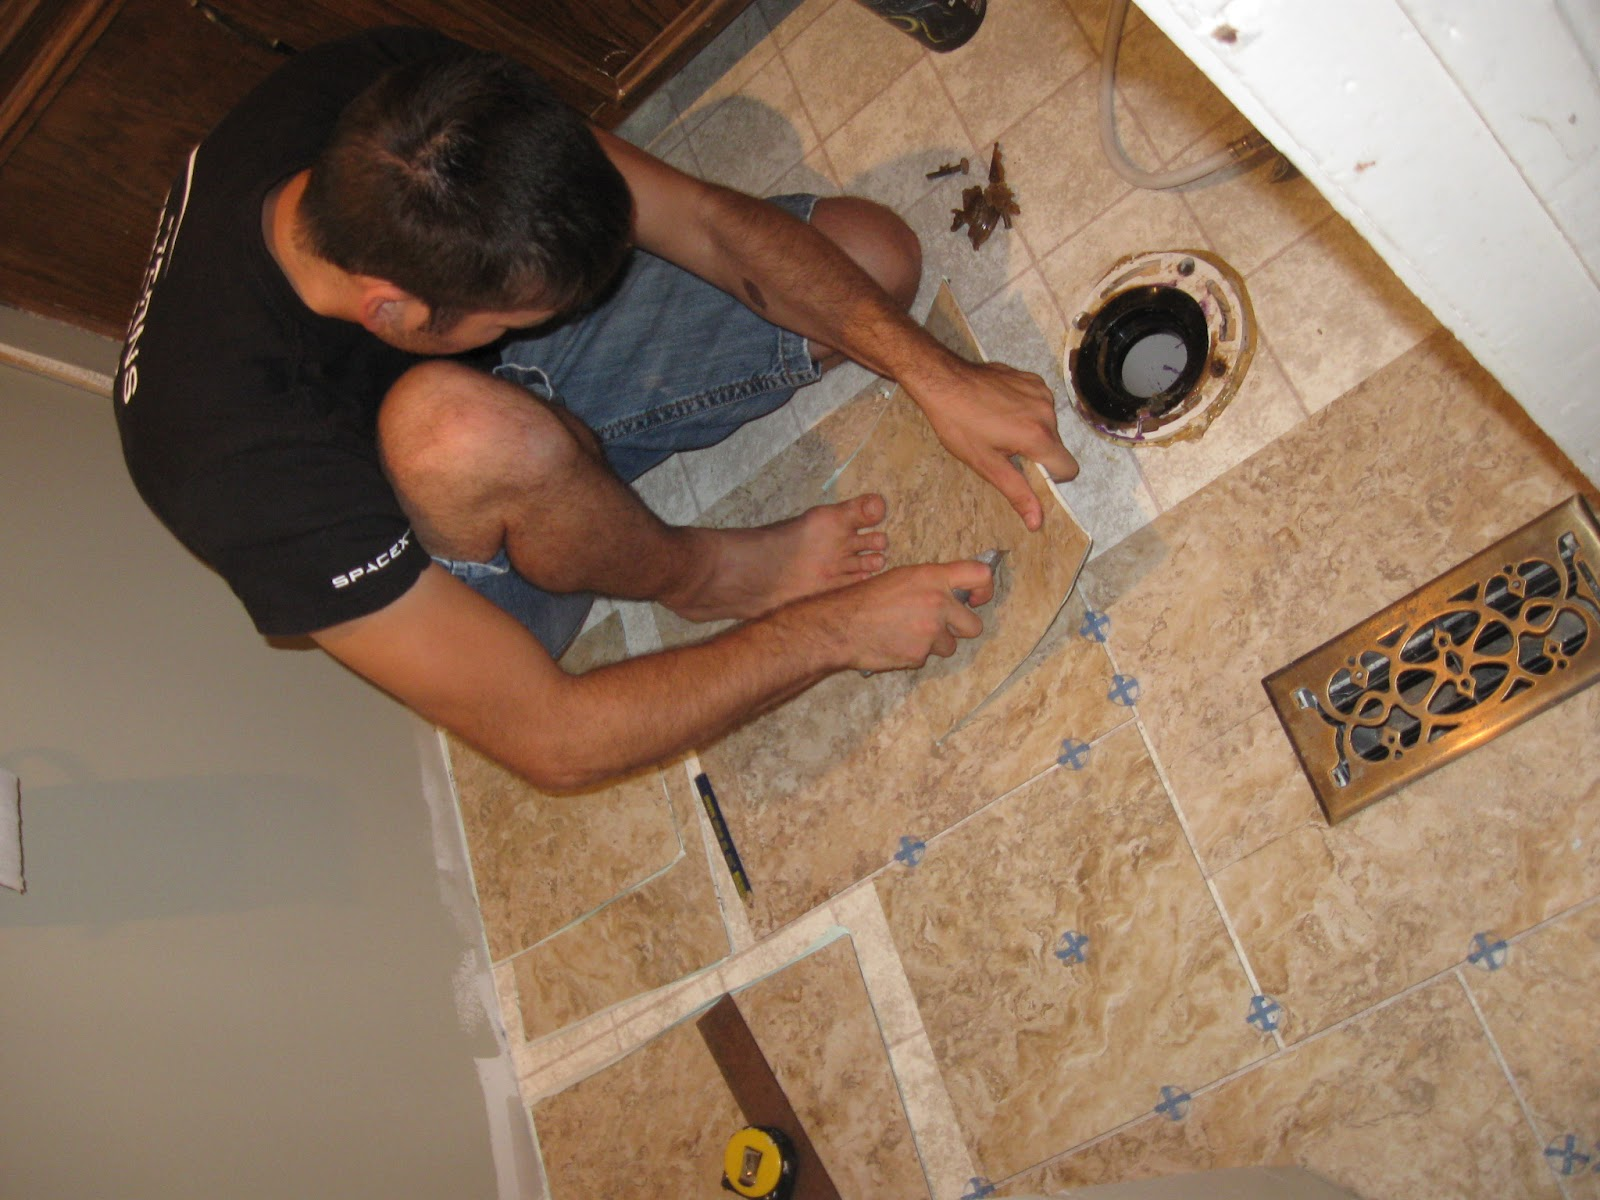 The Rehomesteaders Diy Grouted Vinyl Tiling